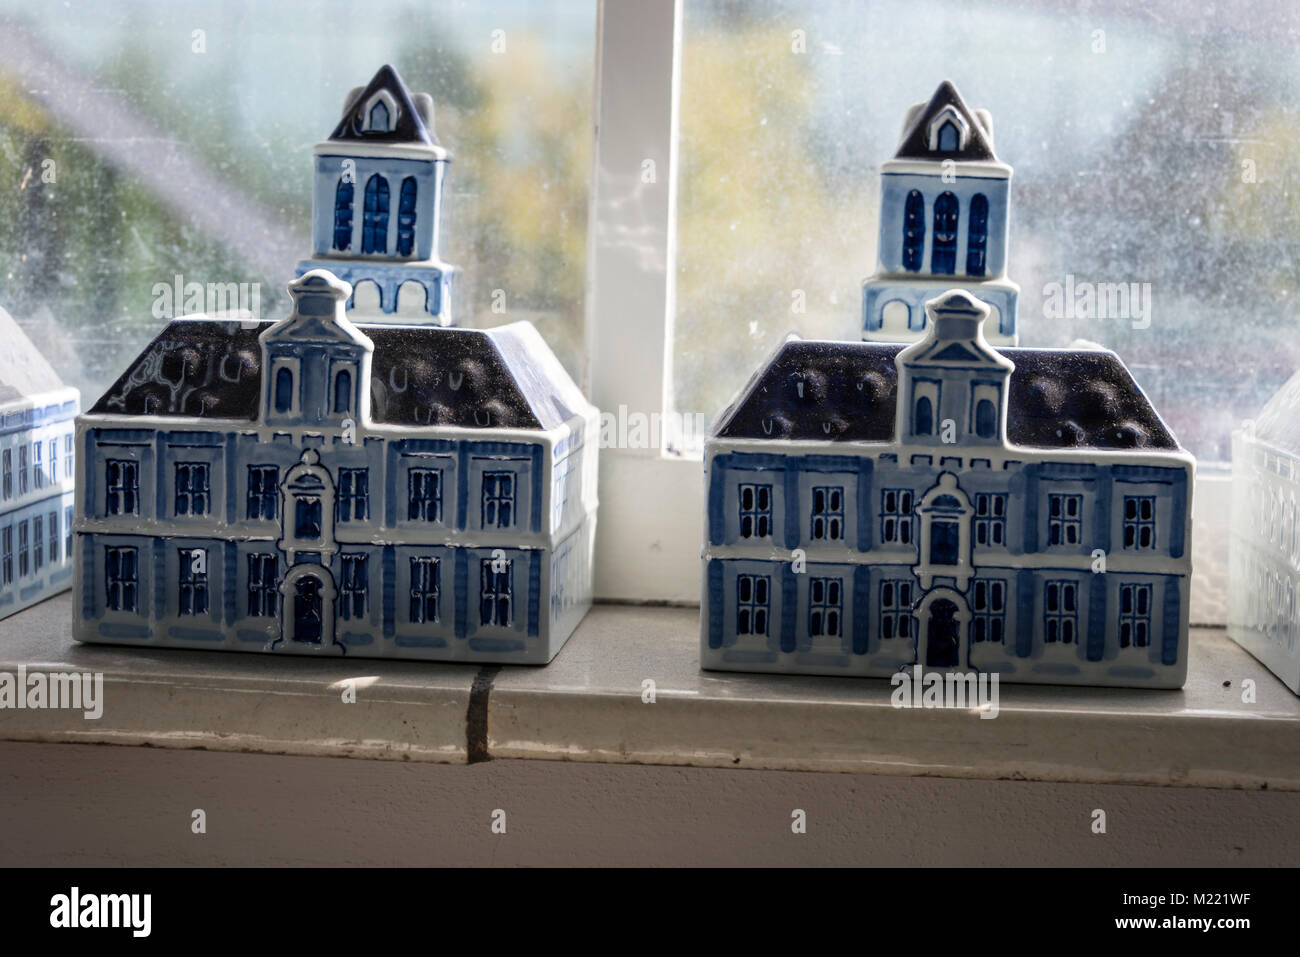 A couple of Royal Delft earthenware models of Delft Town Hall at the Royal Delft factory in Delft, Holland - Stock Image